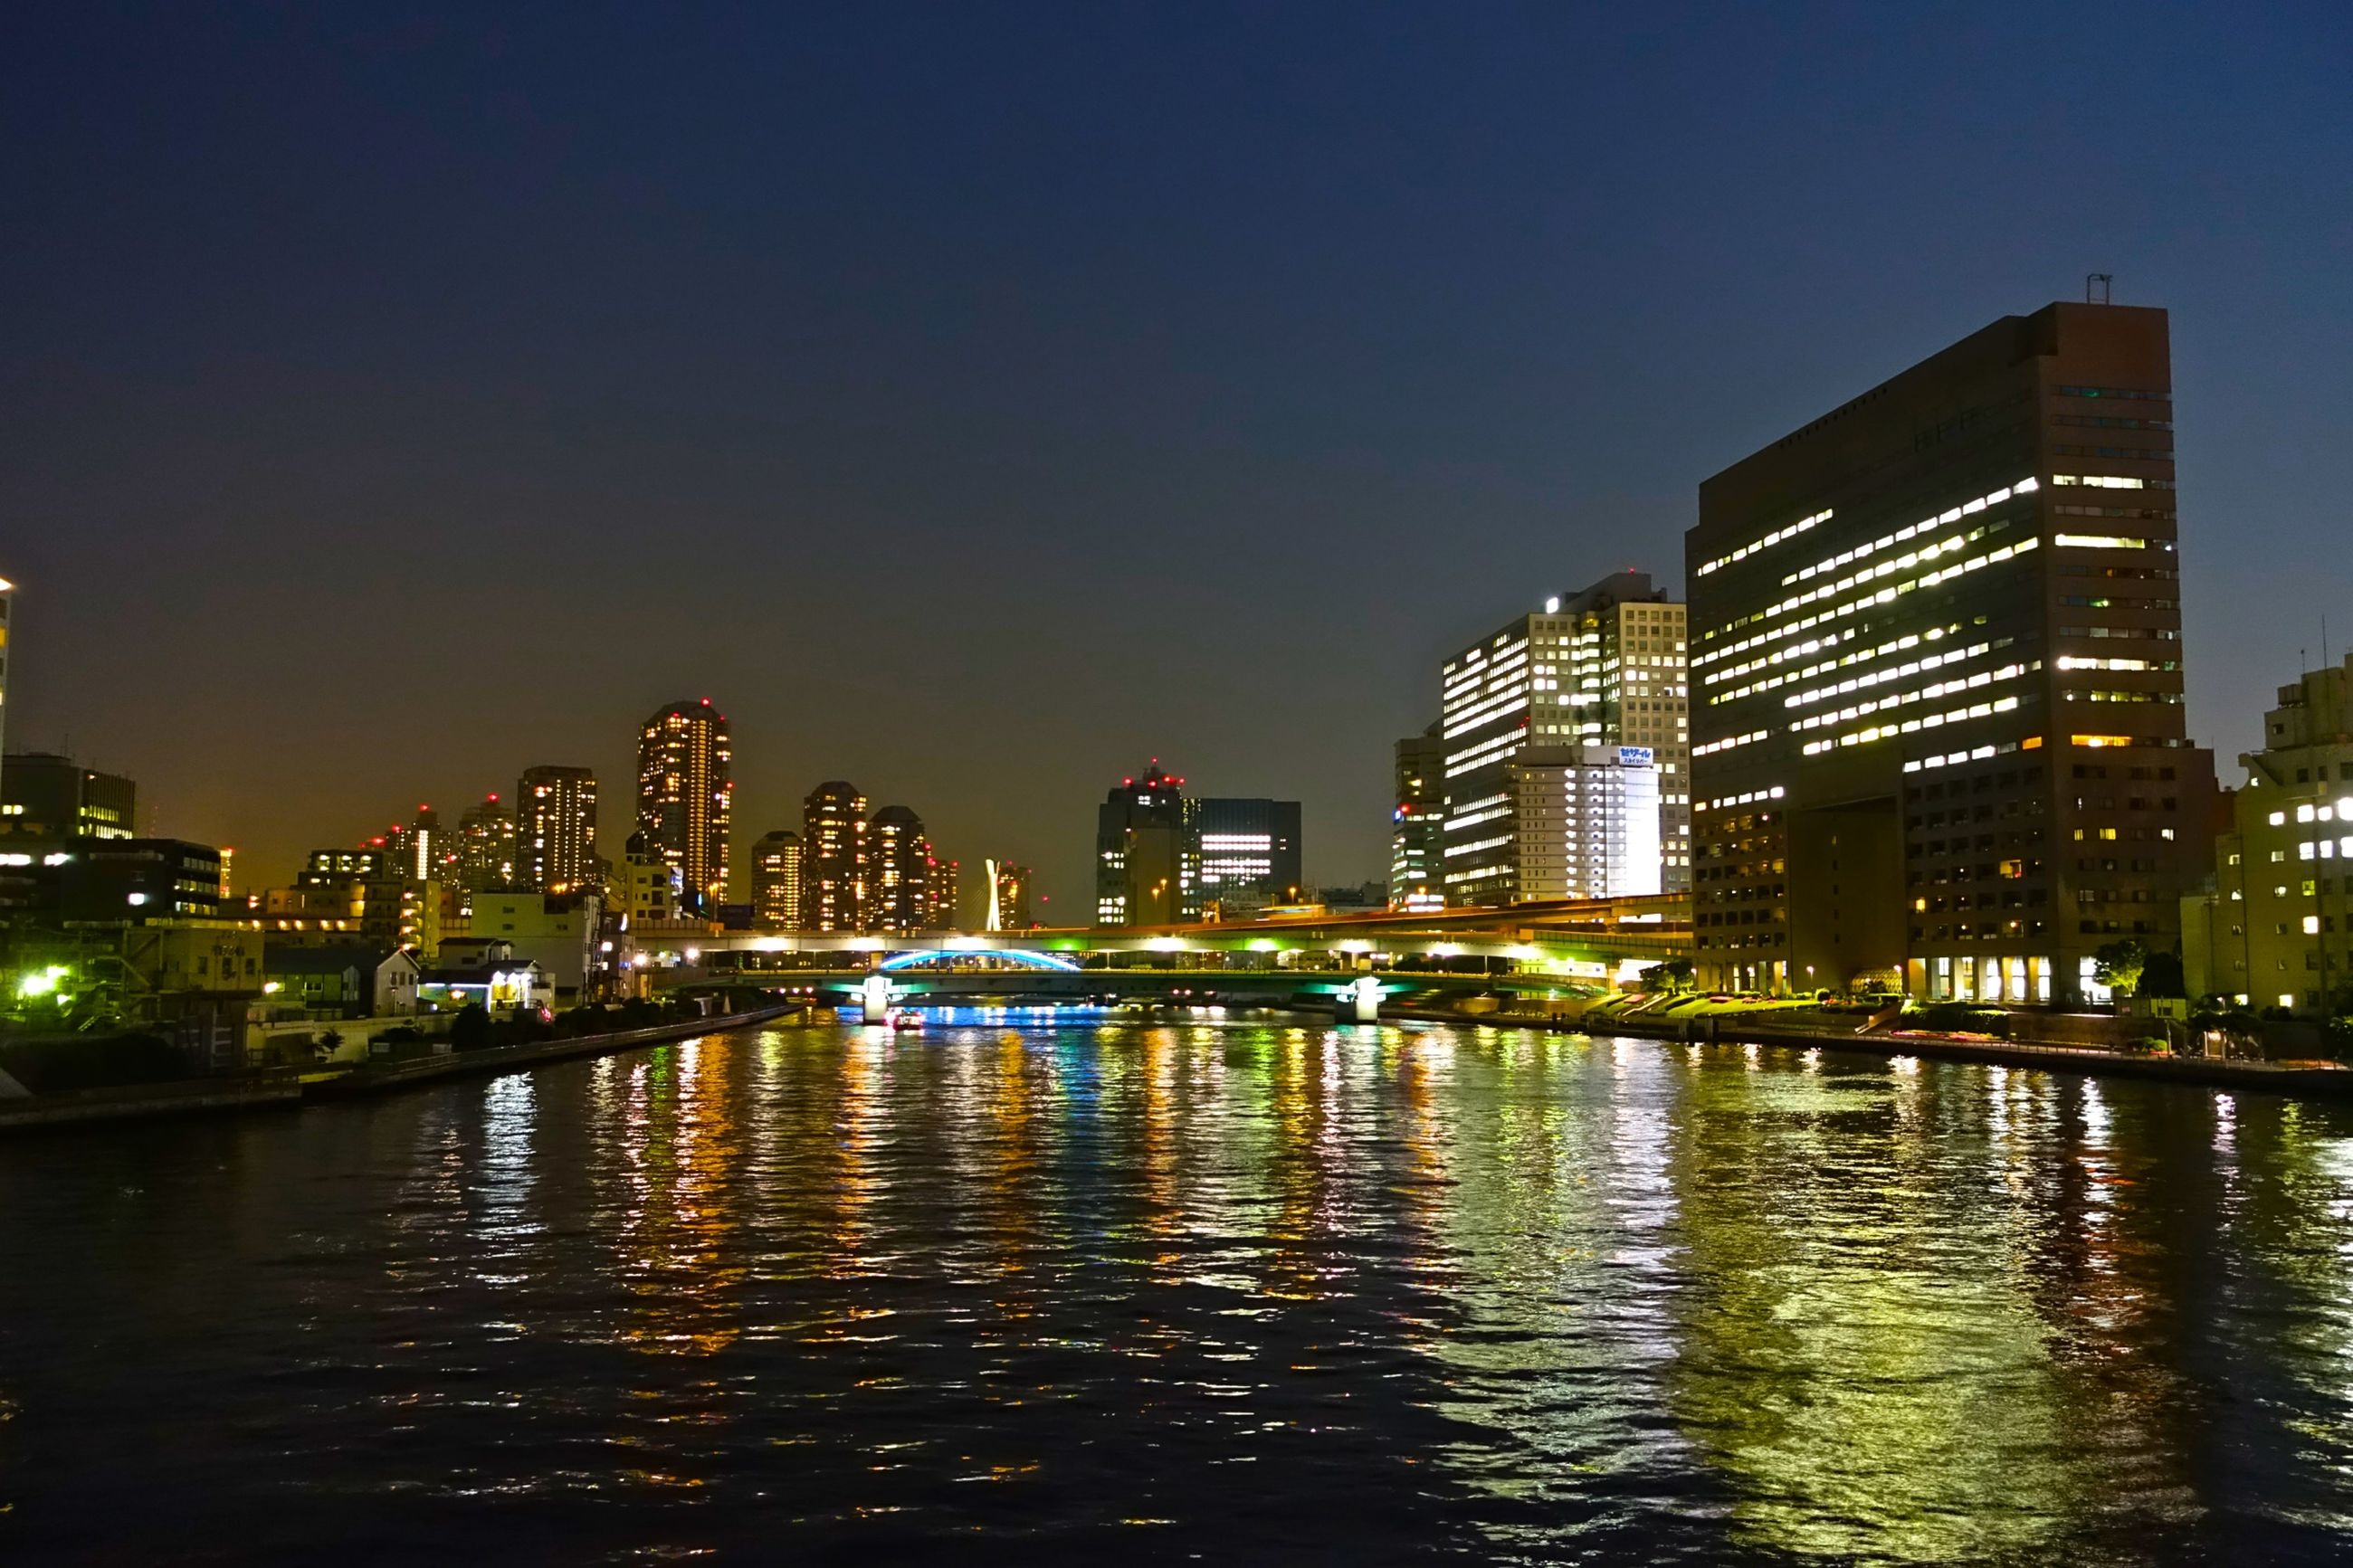 building exterior, architecture, illuminated, built structure, water, night, city, waterfront, reflection, clear sky, river, building, copy space, cityscape, skyscraper, sky, city life, modern, residential building, urban skyline